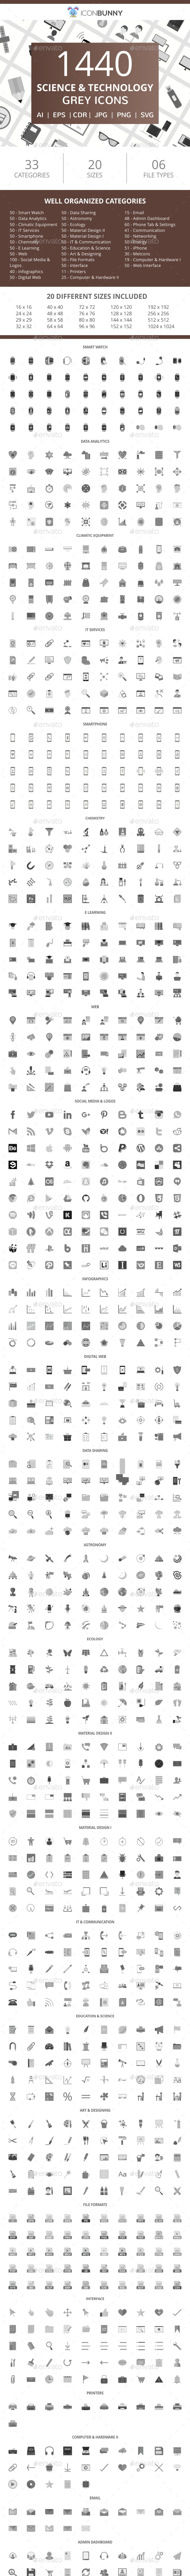 1440 Science & Technology Flat Greyscale Icons - Icons